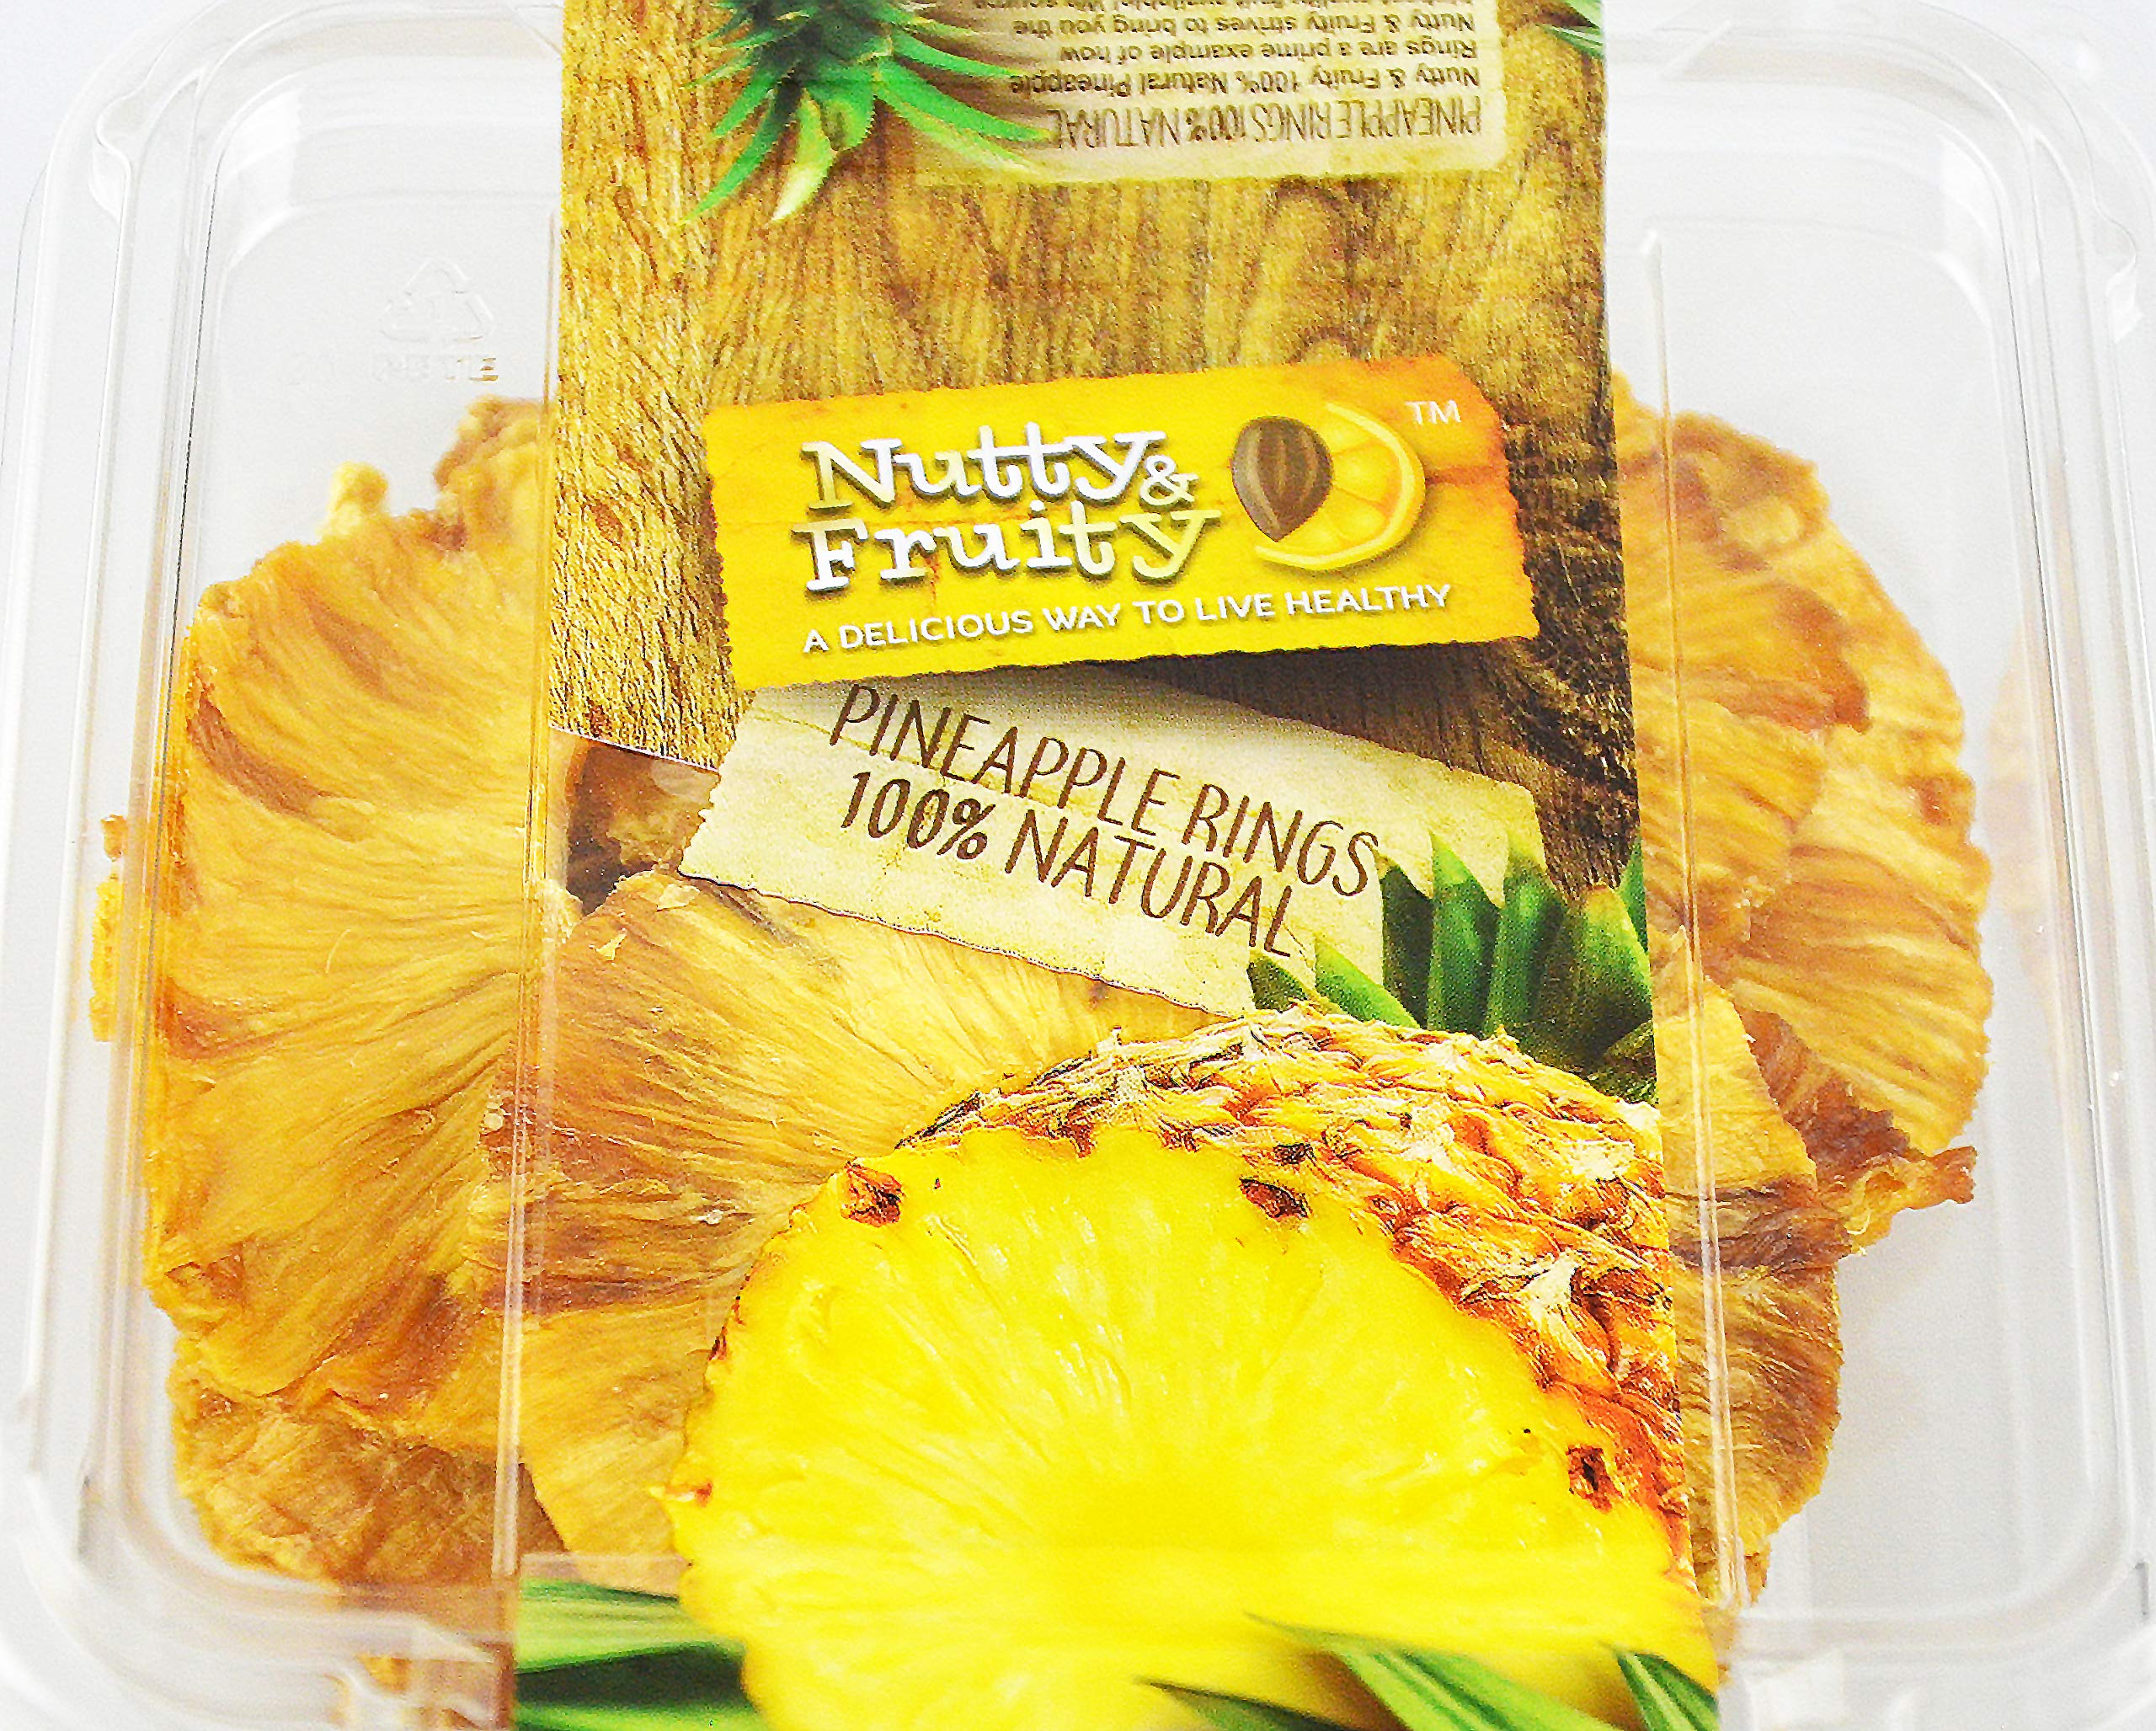 Nutty and Fruity 100% Natural Dried Pineapple Rings 4.5 Ounces by Nutty and Fruity